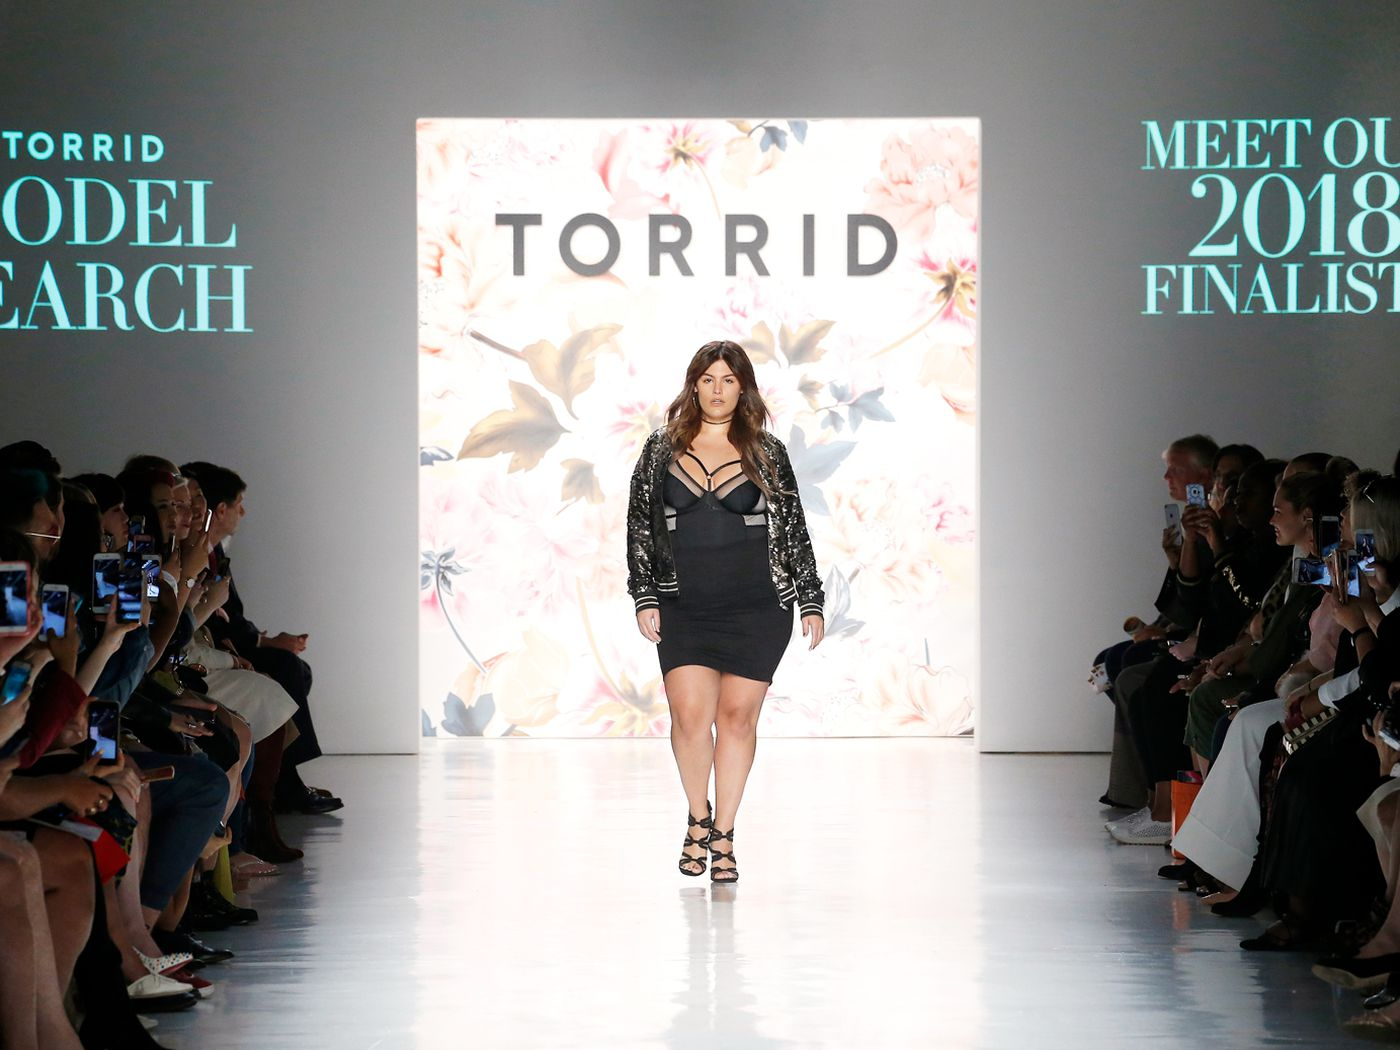 Torrid S Nyfw Show Reaffirmed Fashion S Disdain For Fat People Racked